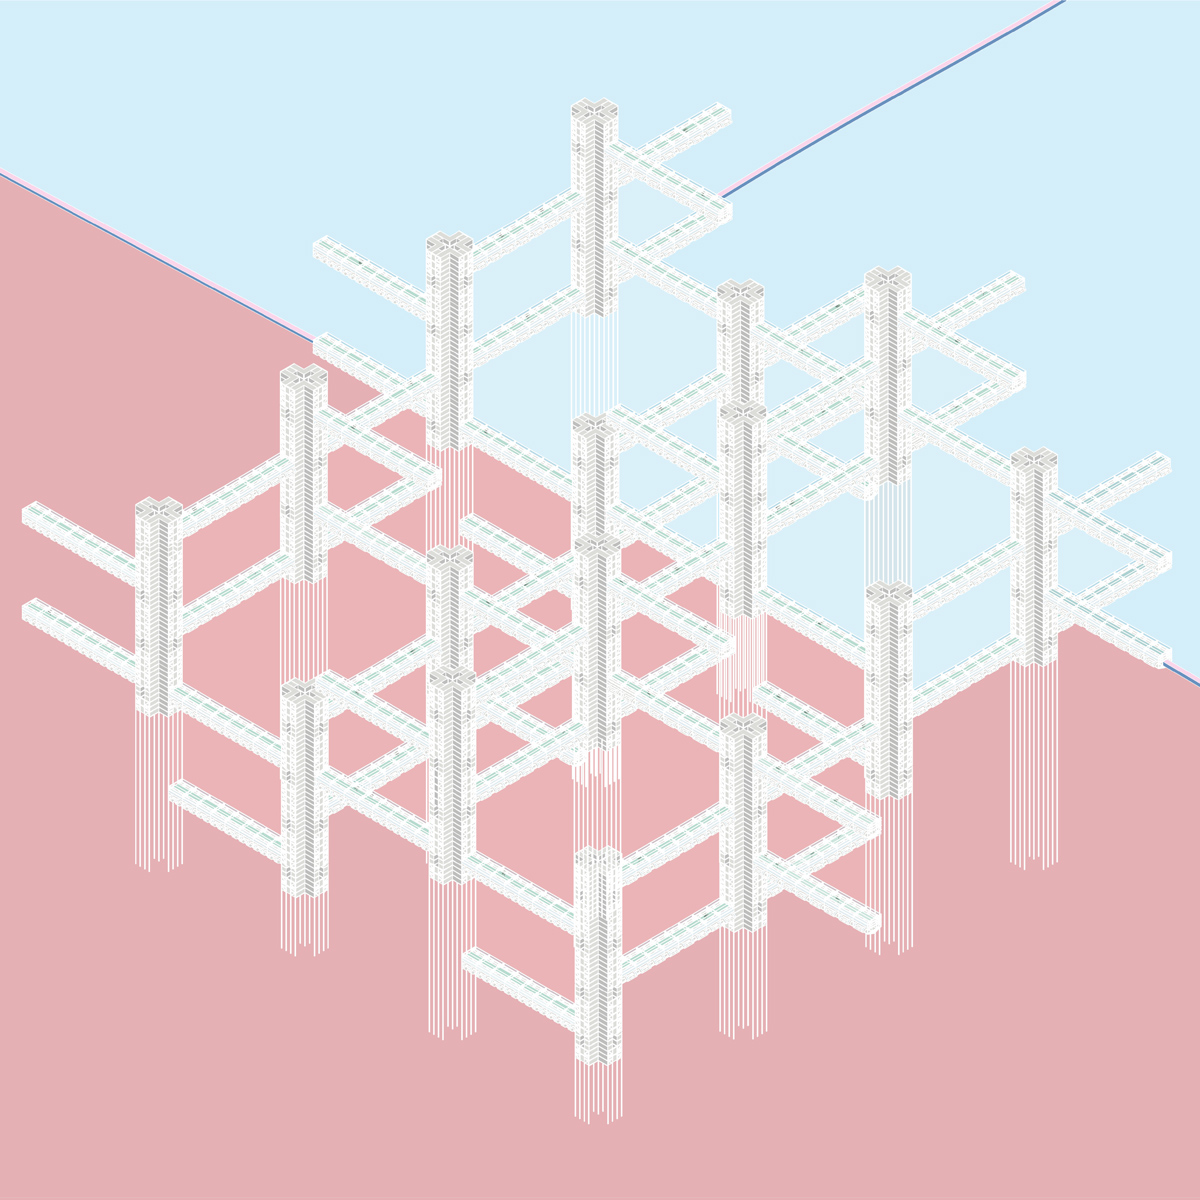 Isometric drawing of a regional infrastructure of towers connected by housing and transport by student Amy Dicker